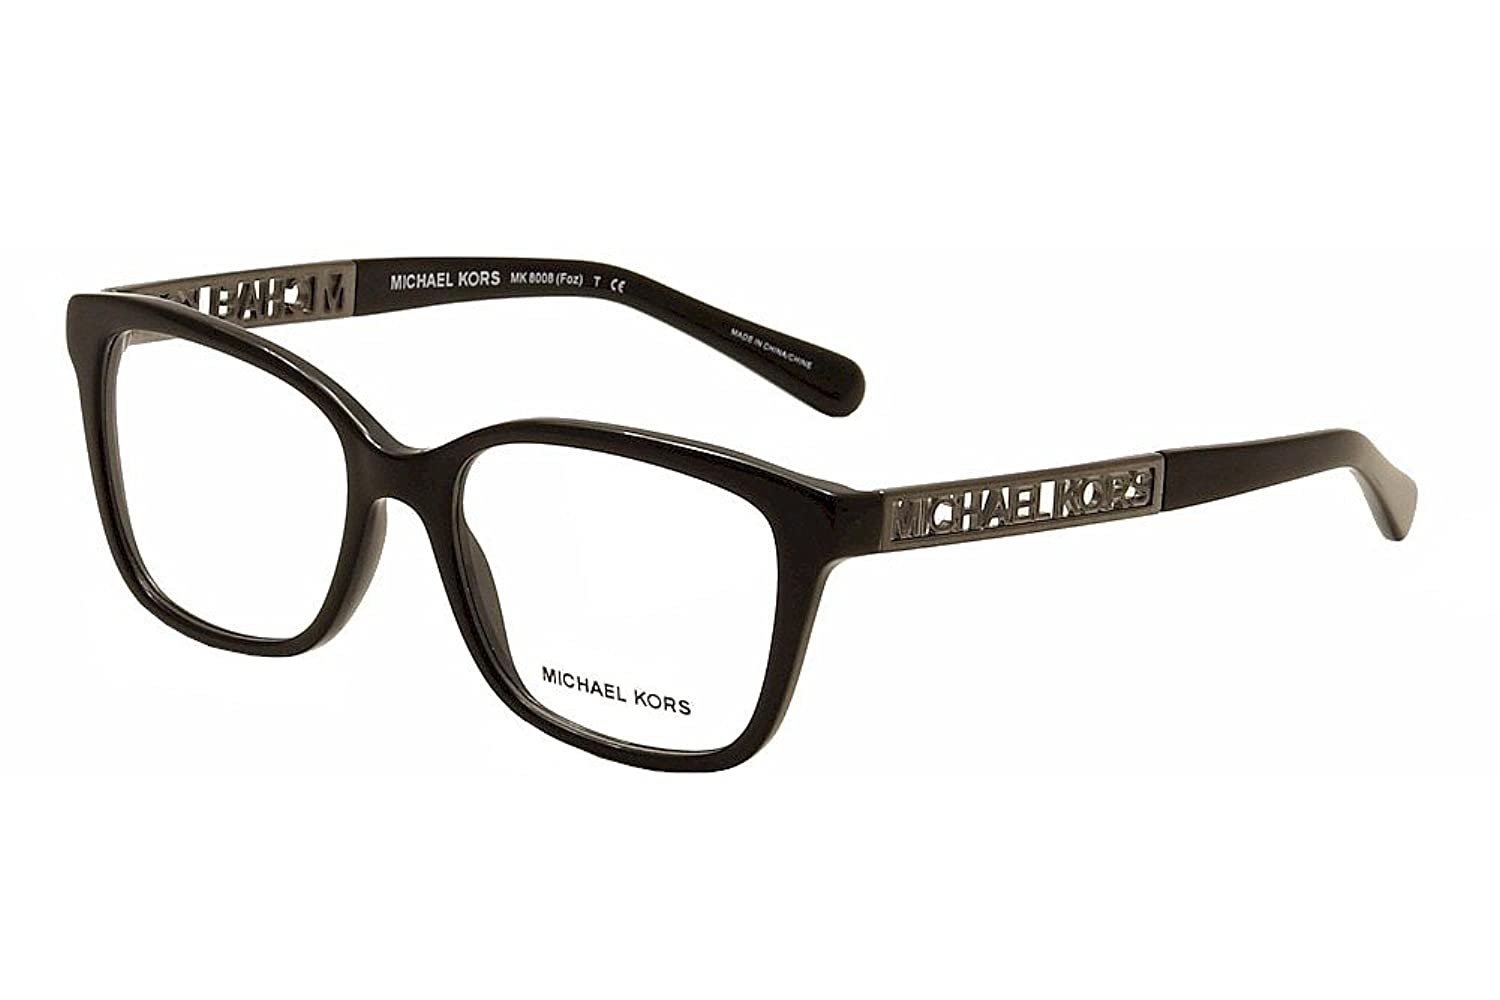 michael kors foz mk8008 eyeglass frames 3005 52 black at amazon womens clothing store - Mk Glasses Frames